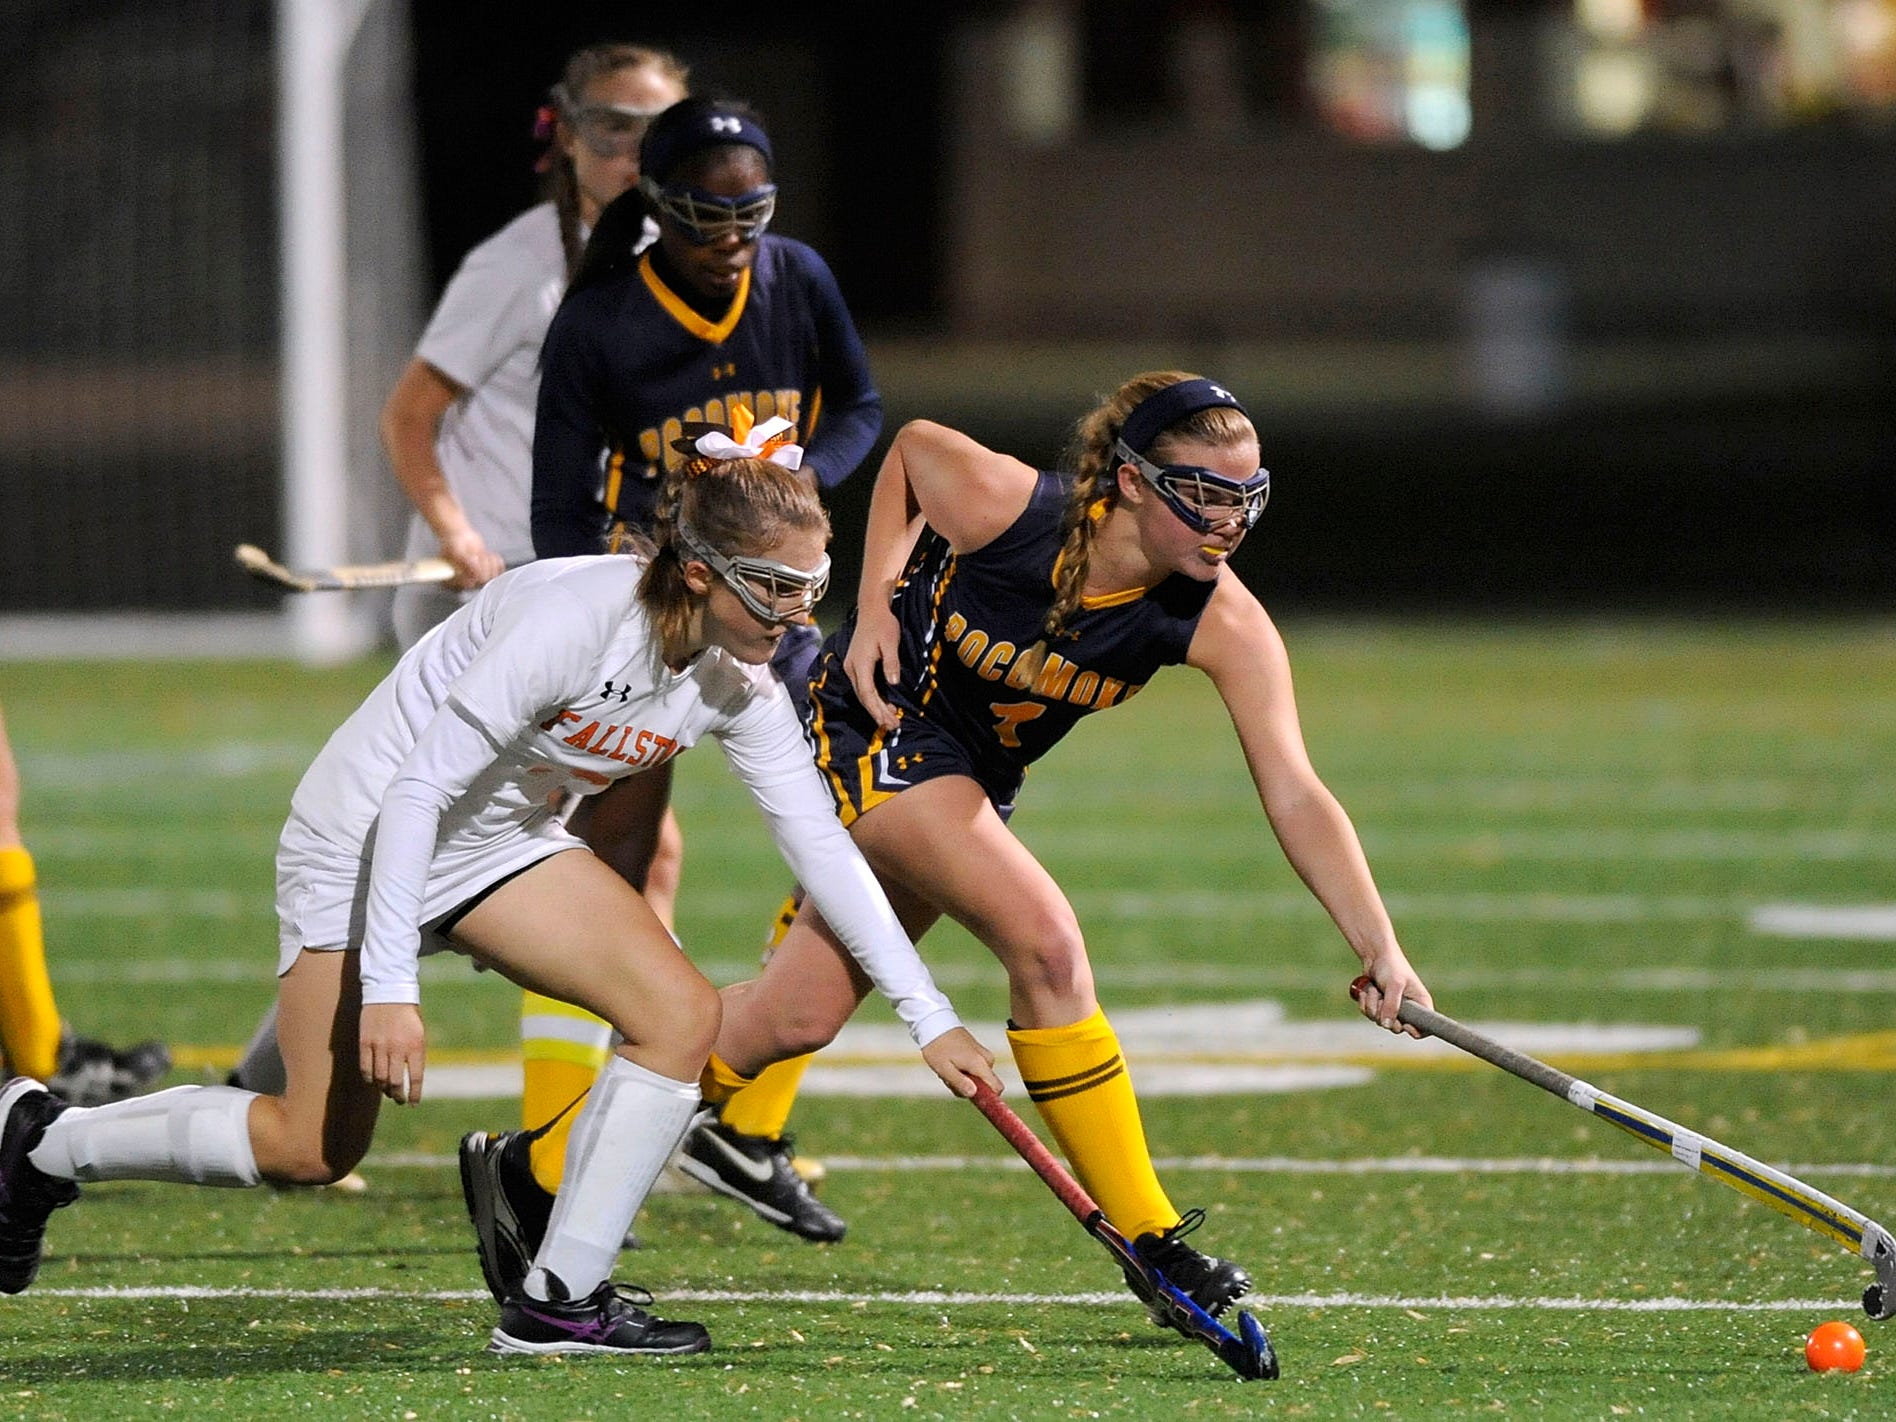 Pocomoke's McKenzie Beauchamp, right, battles Fallston's Kyle Ryan for a ball in the second half of a state semifinal field hockey game Monday, Nov. 3, 2014 in Annapolis. (Photo by Steve Ruark for The Daily Times)